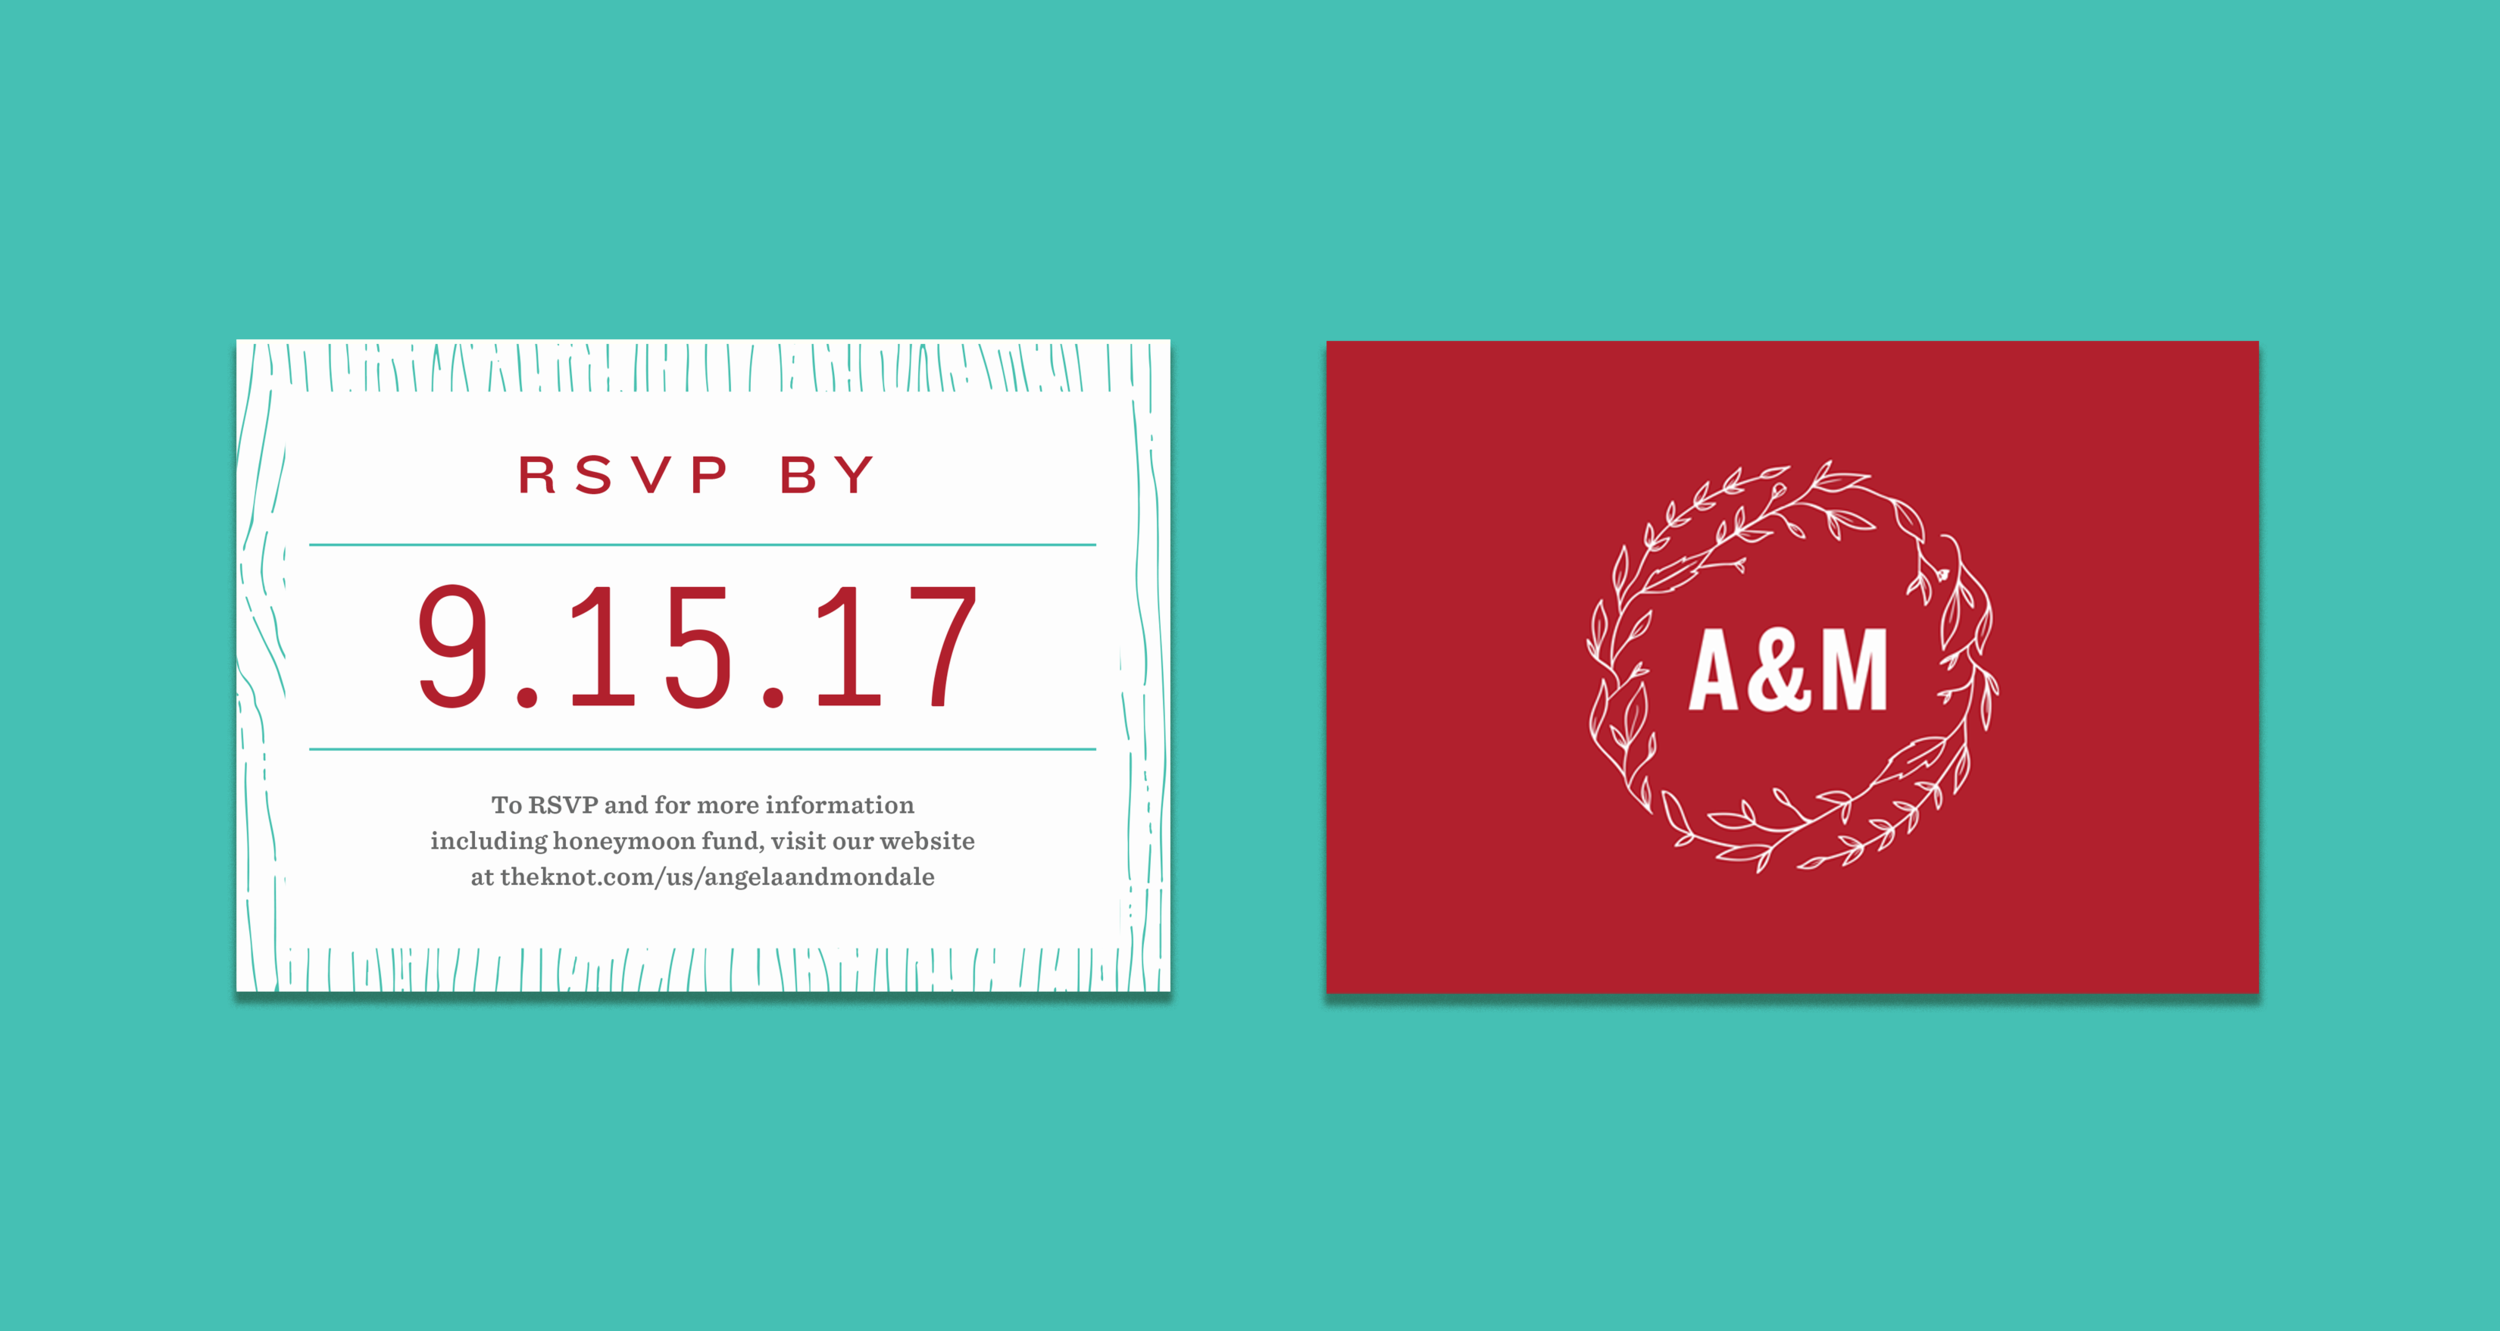 A&M Wedding Invitations — Andy An Creative